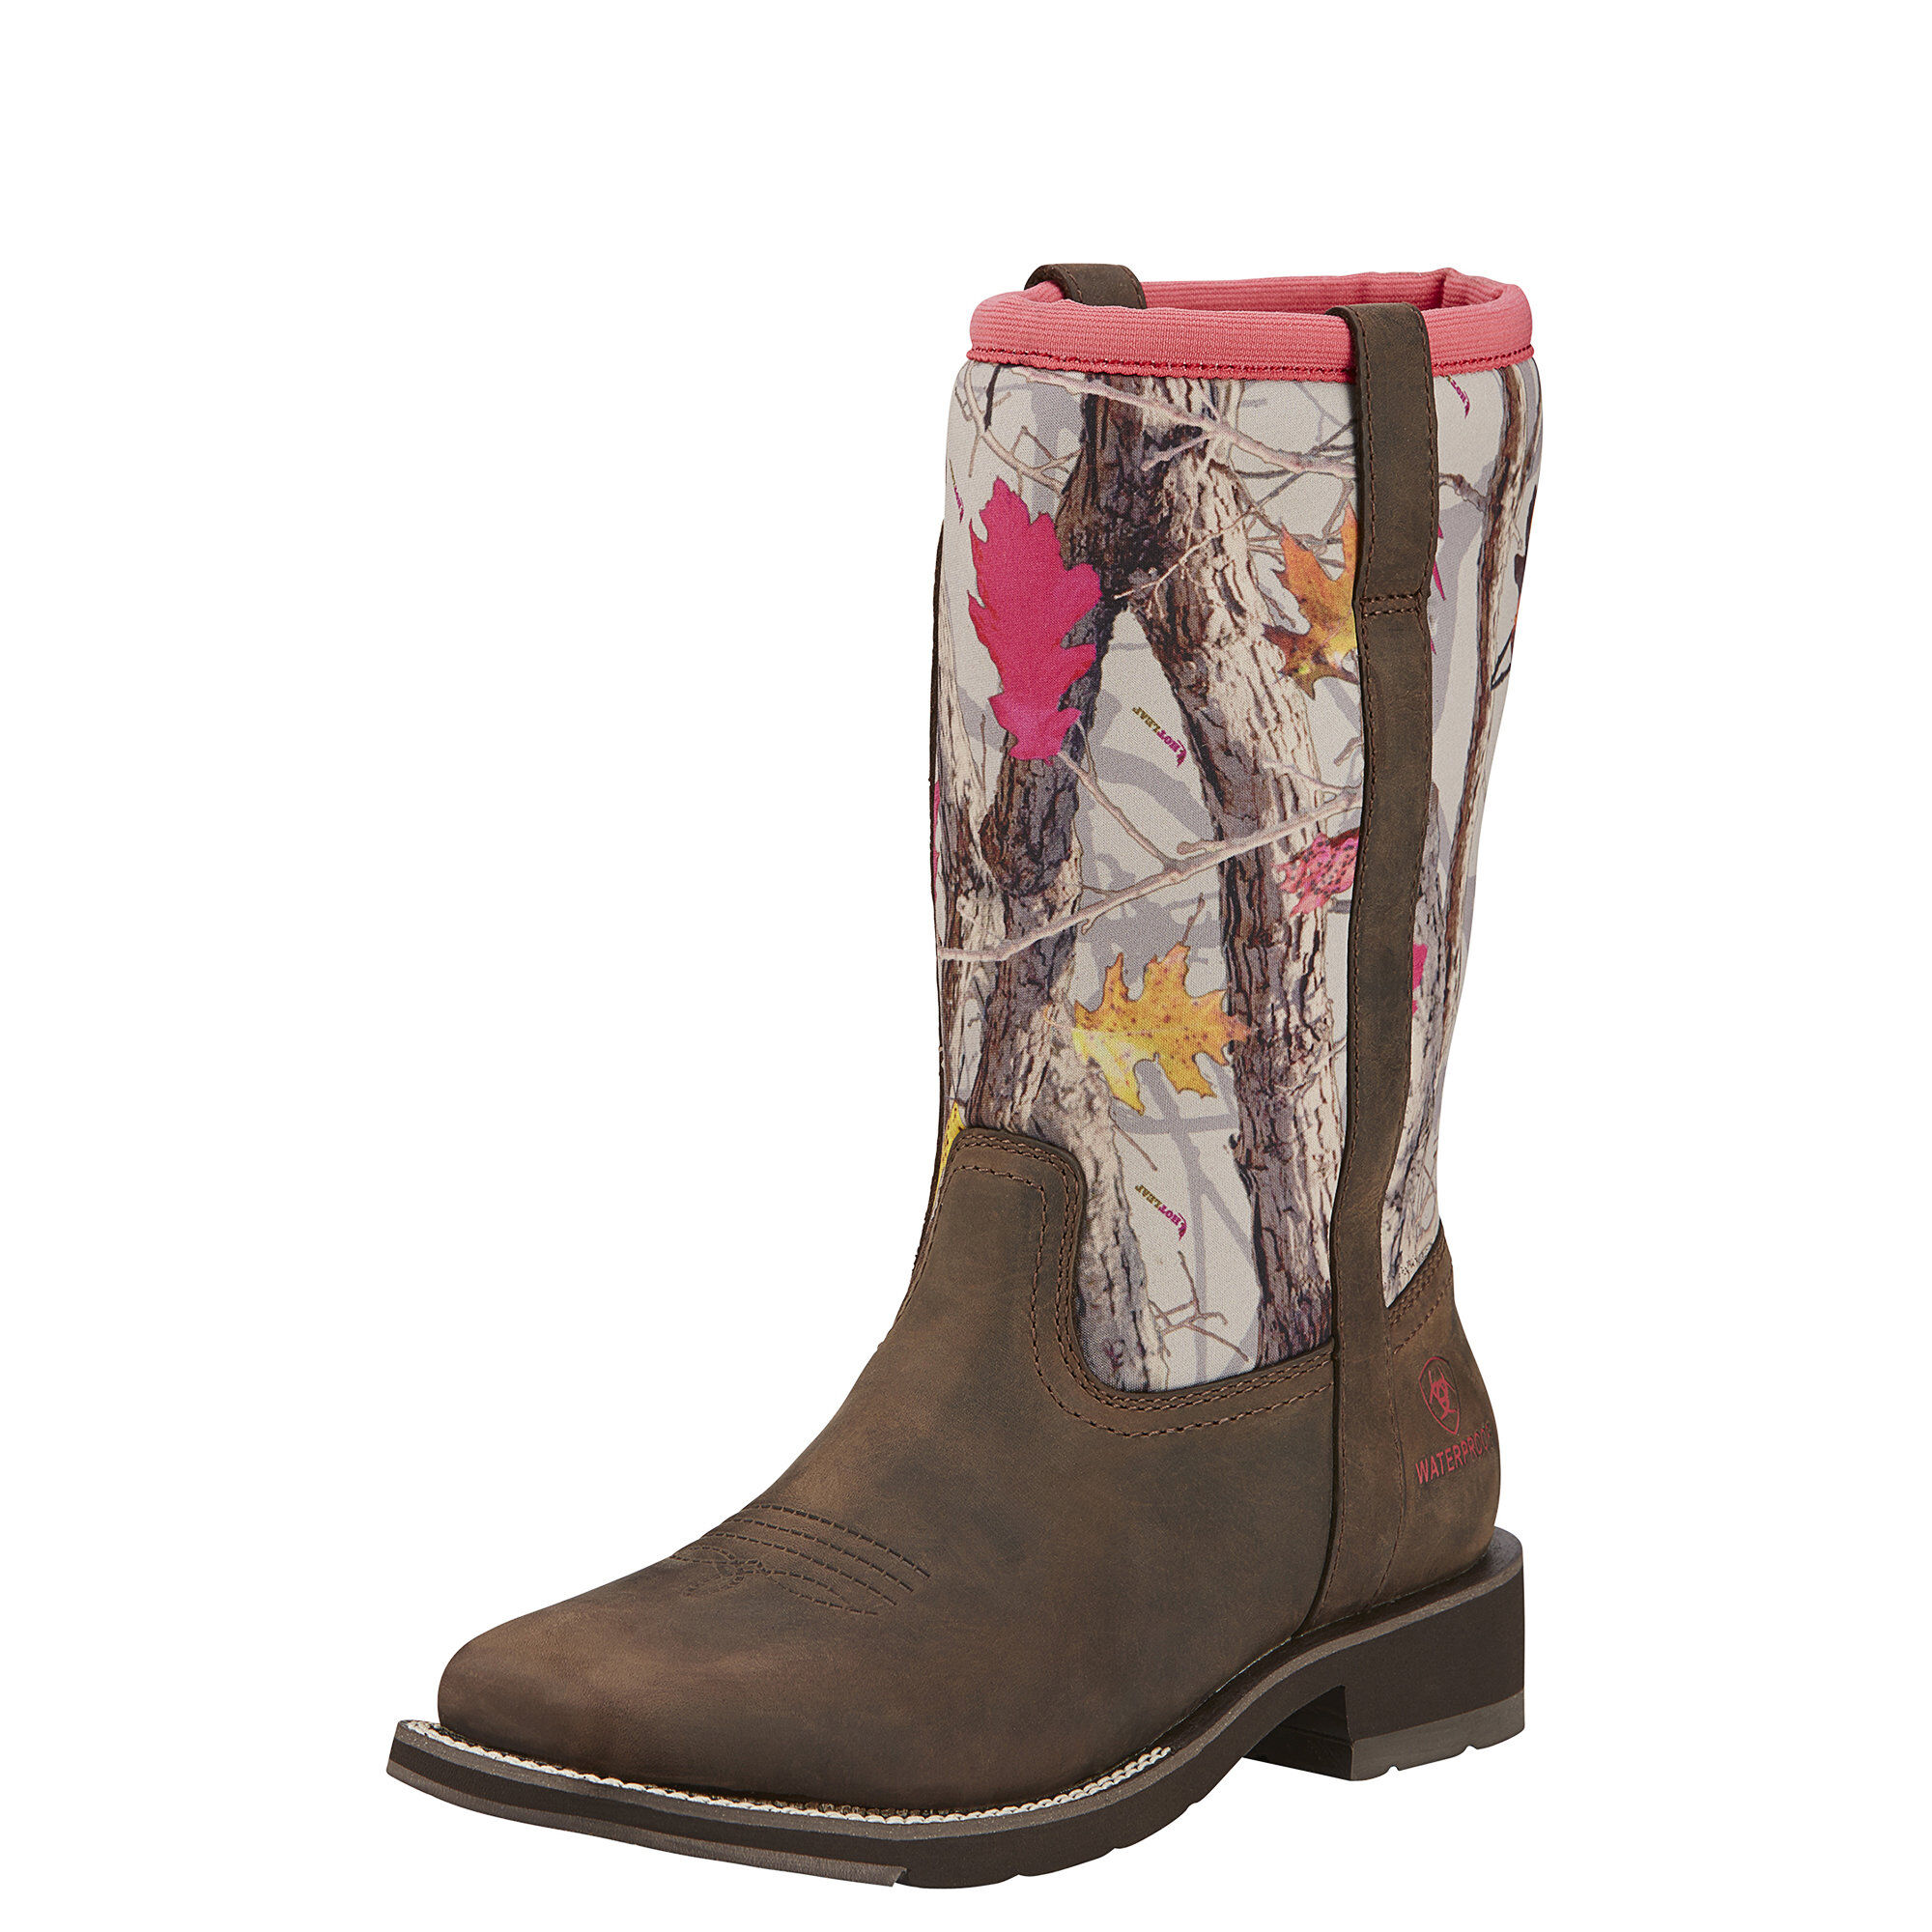 Big Discount Women Ariat Fatbaby All Weather boots k9C0Jp2M